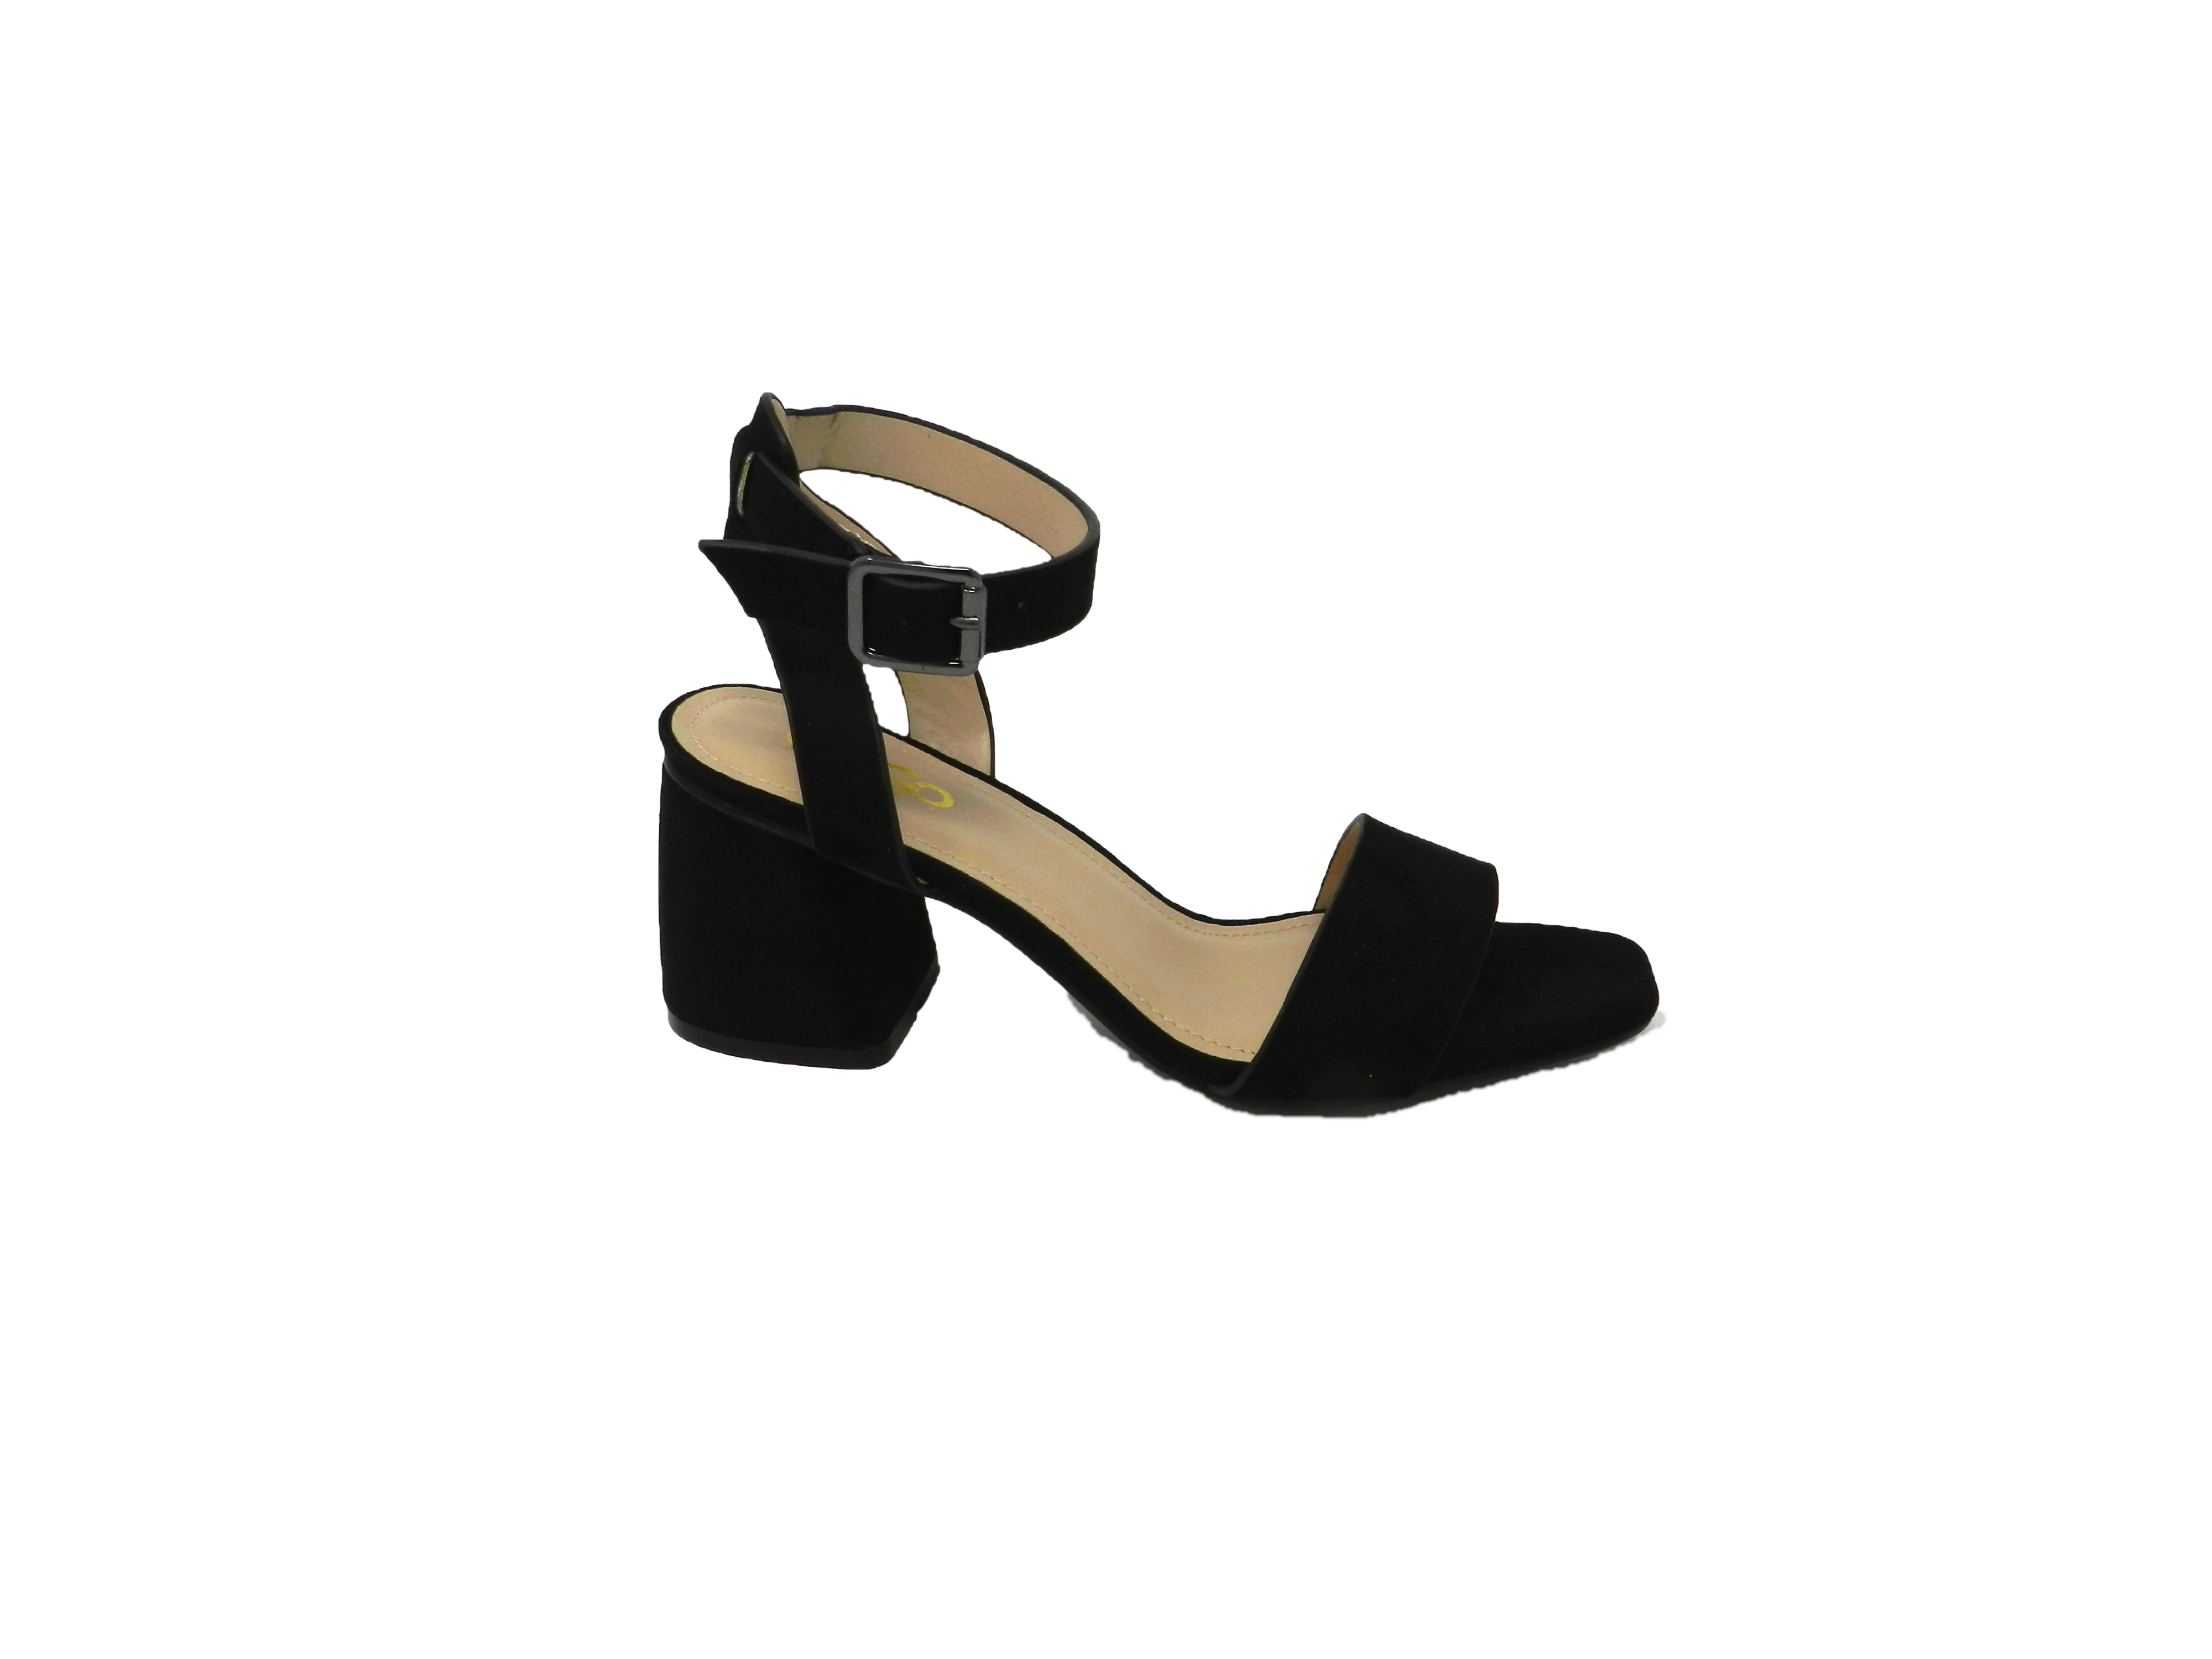 Comfortable sandal women's faux suede - black